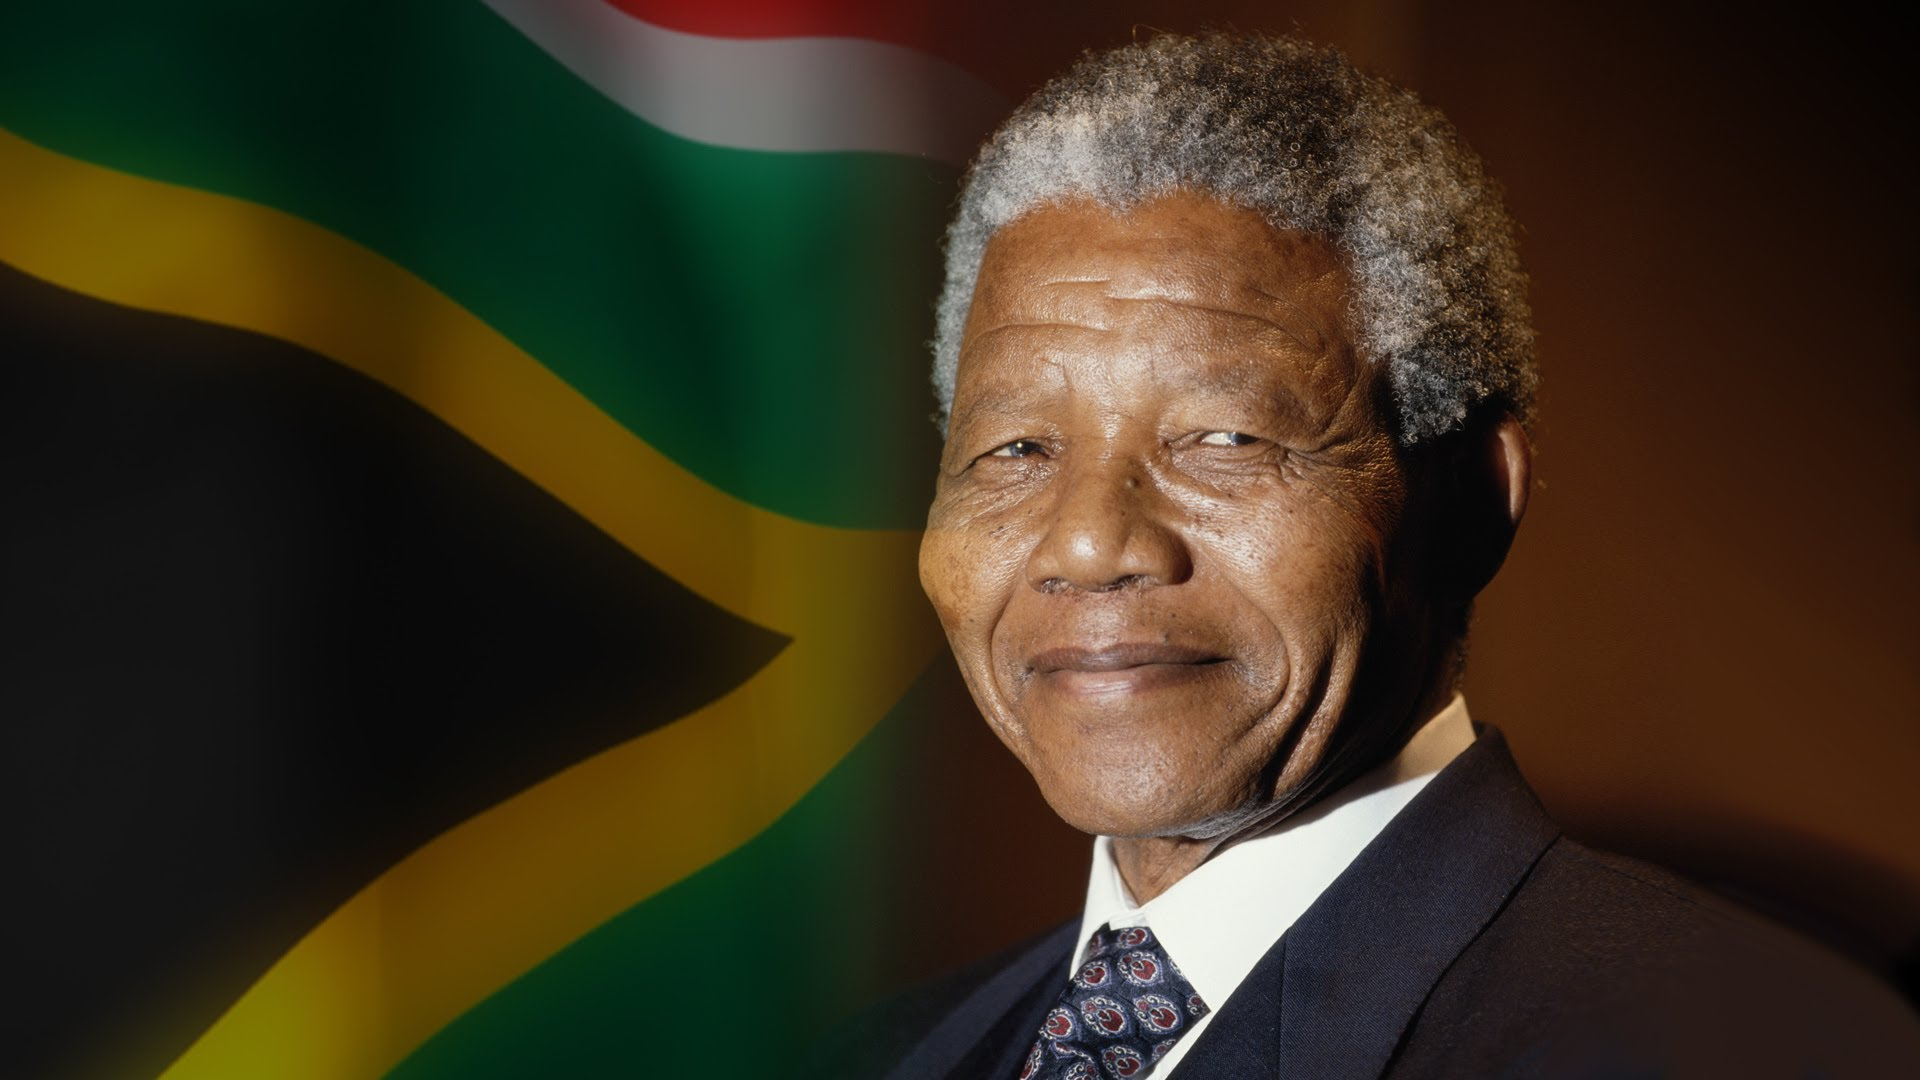 The Best Politicians in History - Nelson Mandela